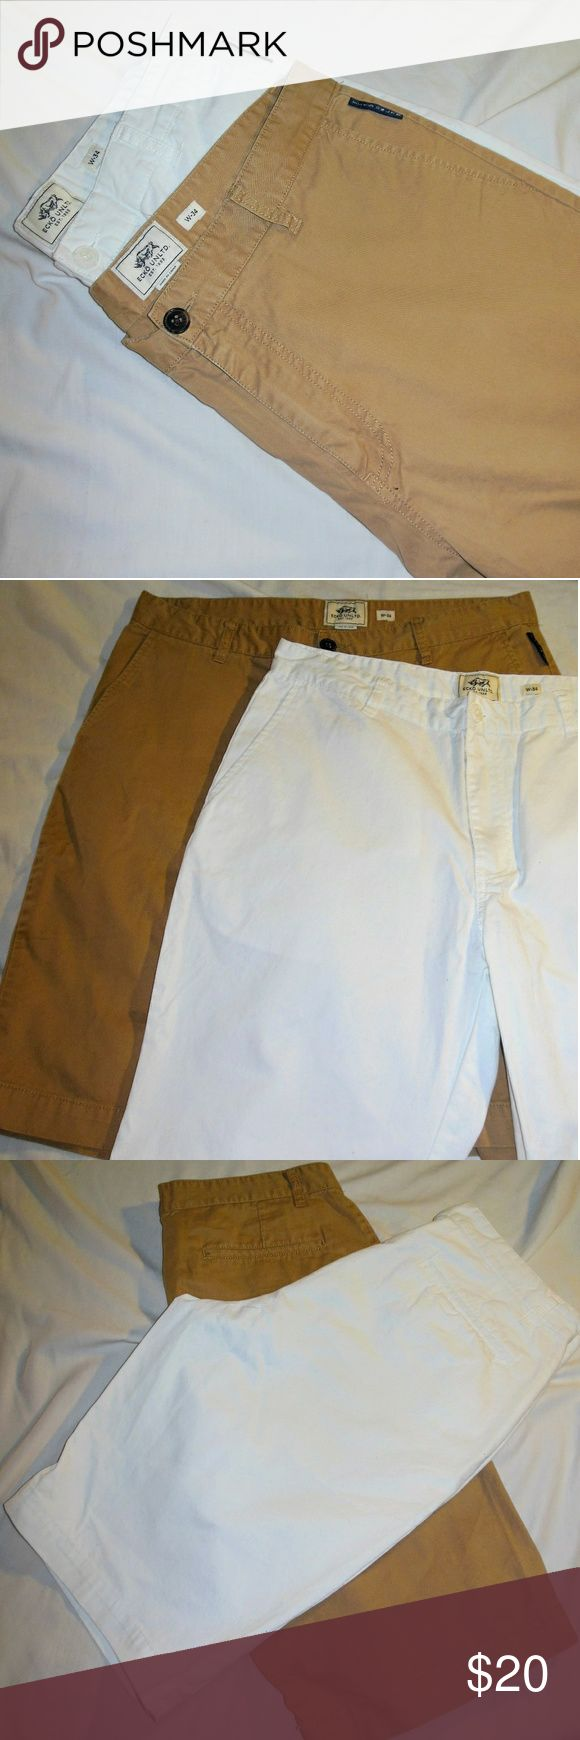 Bundle Men's Ecko Unltd Cargo Shorts W-34 Tan Whte Here I have a bundle of two pairs of mens Echo shorts in size W - 34. One is beige/tan and the other is white. They are both in excellent used condition. The white ones look to be nearly brand new. Men just don't have enough variety in clothing and Ecko is a little pricey so I figured why not give a guy a hand LOL. Do you have a bundle you'd like to see made? Let me know :-) Ecko Unlimited Shorts